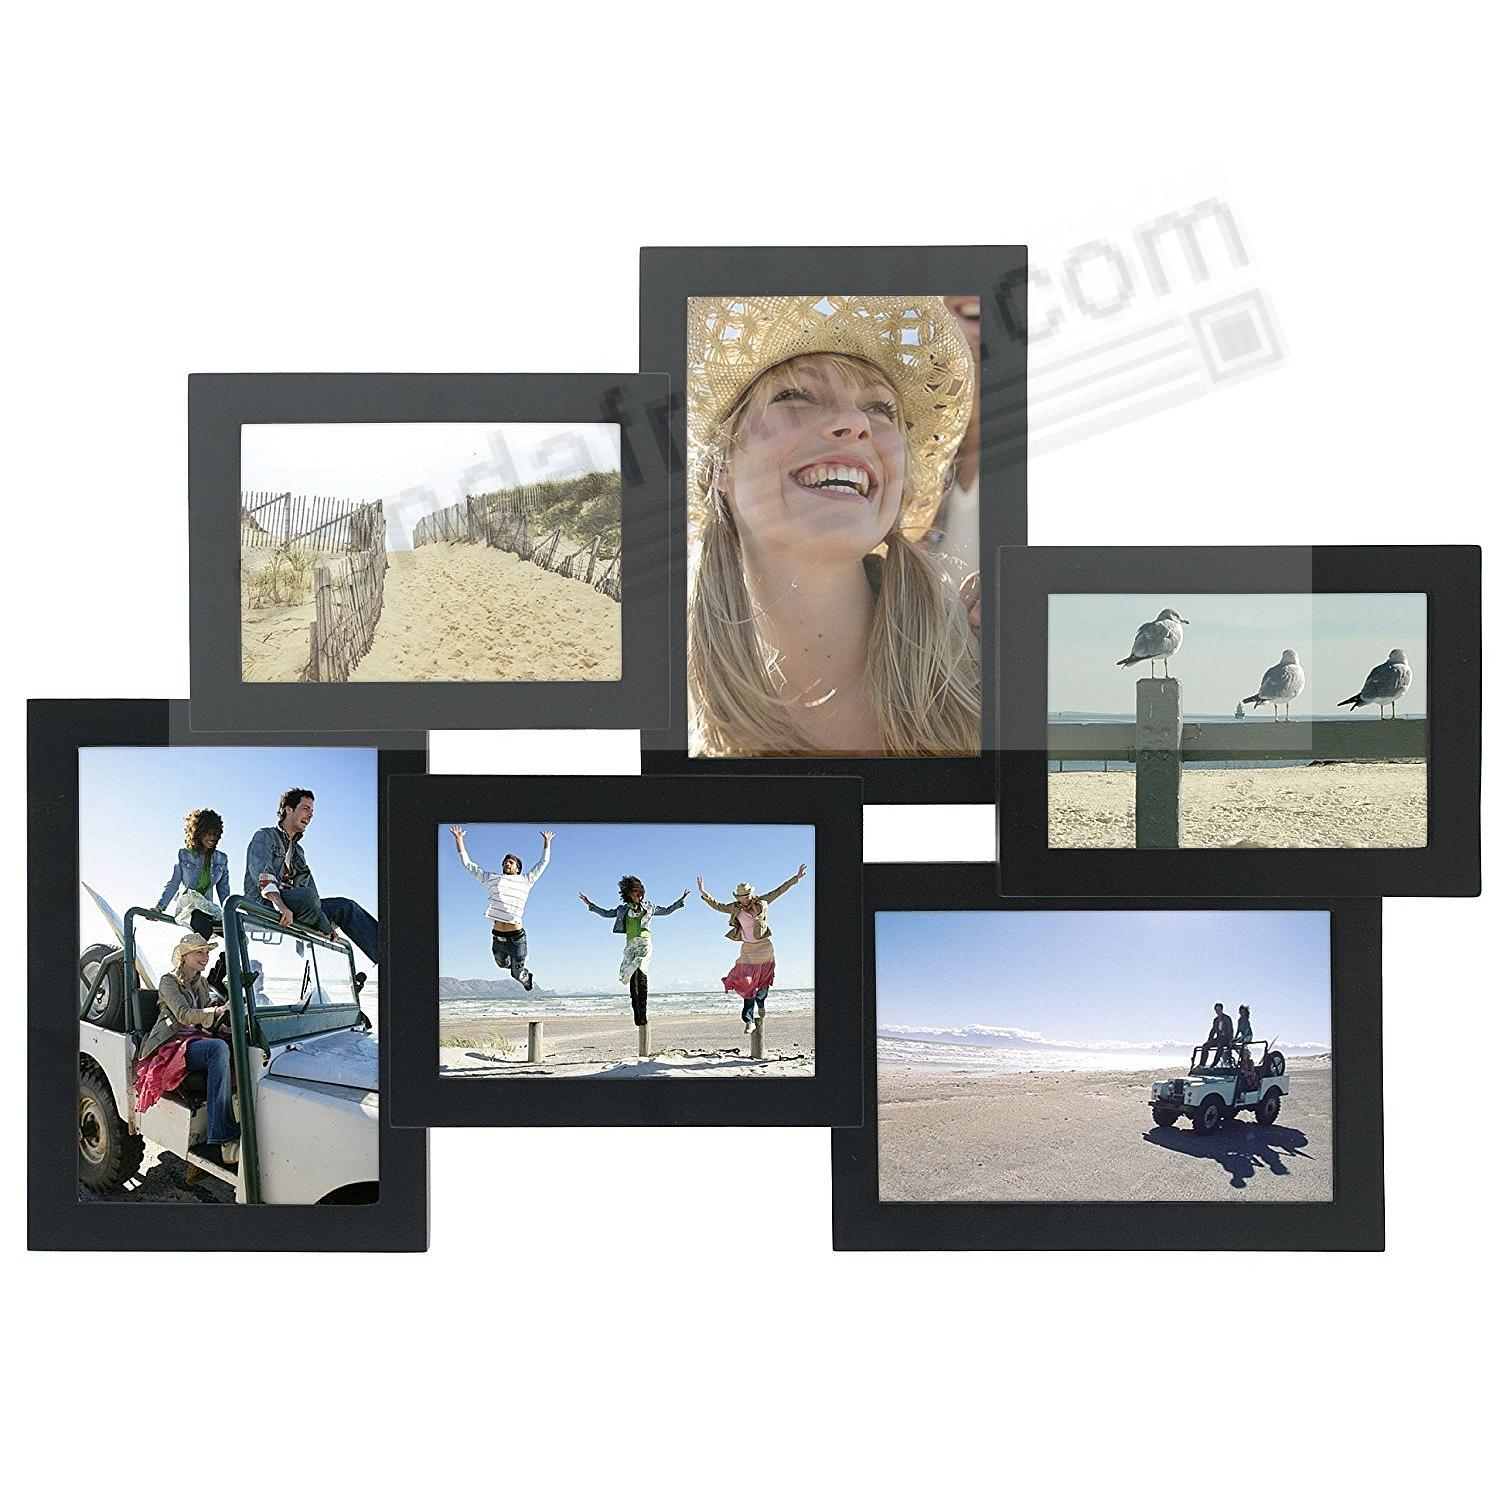 Picture frames photo albums personalized and engraved digital crossroads black 6 multiopening wood collage frame for 3frac12x5 4x6 prints by maldenreg jeuxipadfo Choice Image